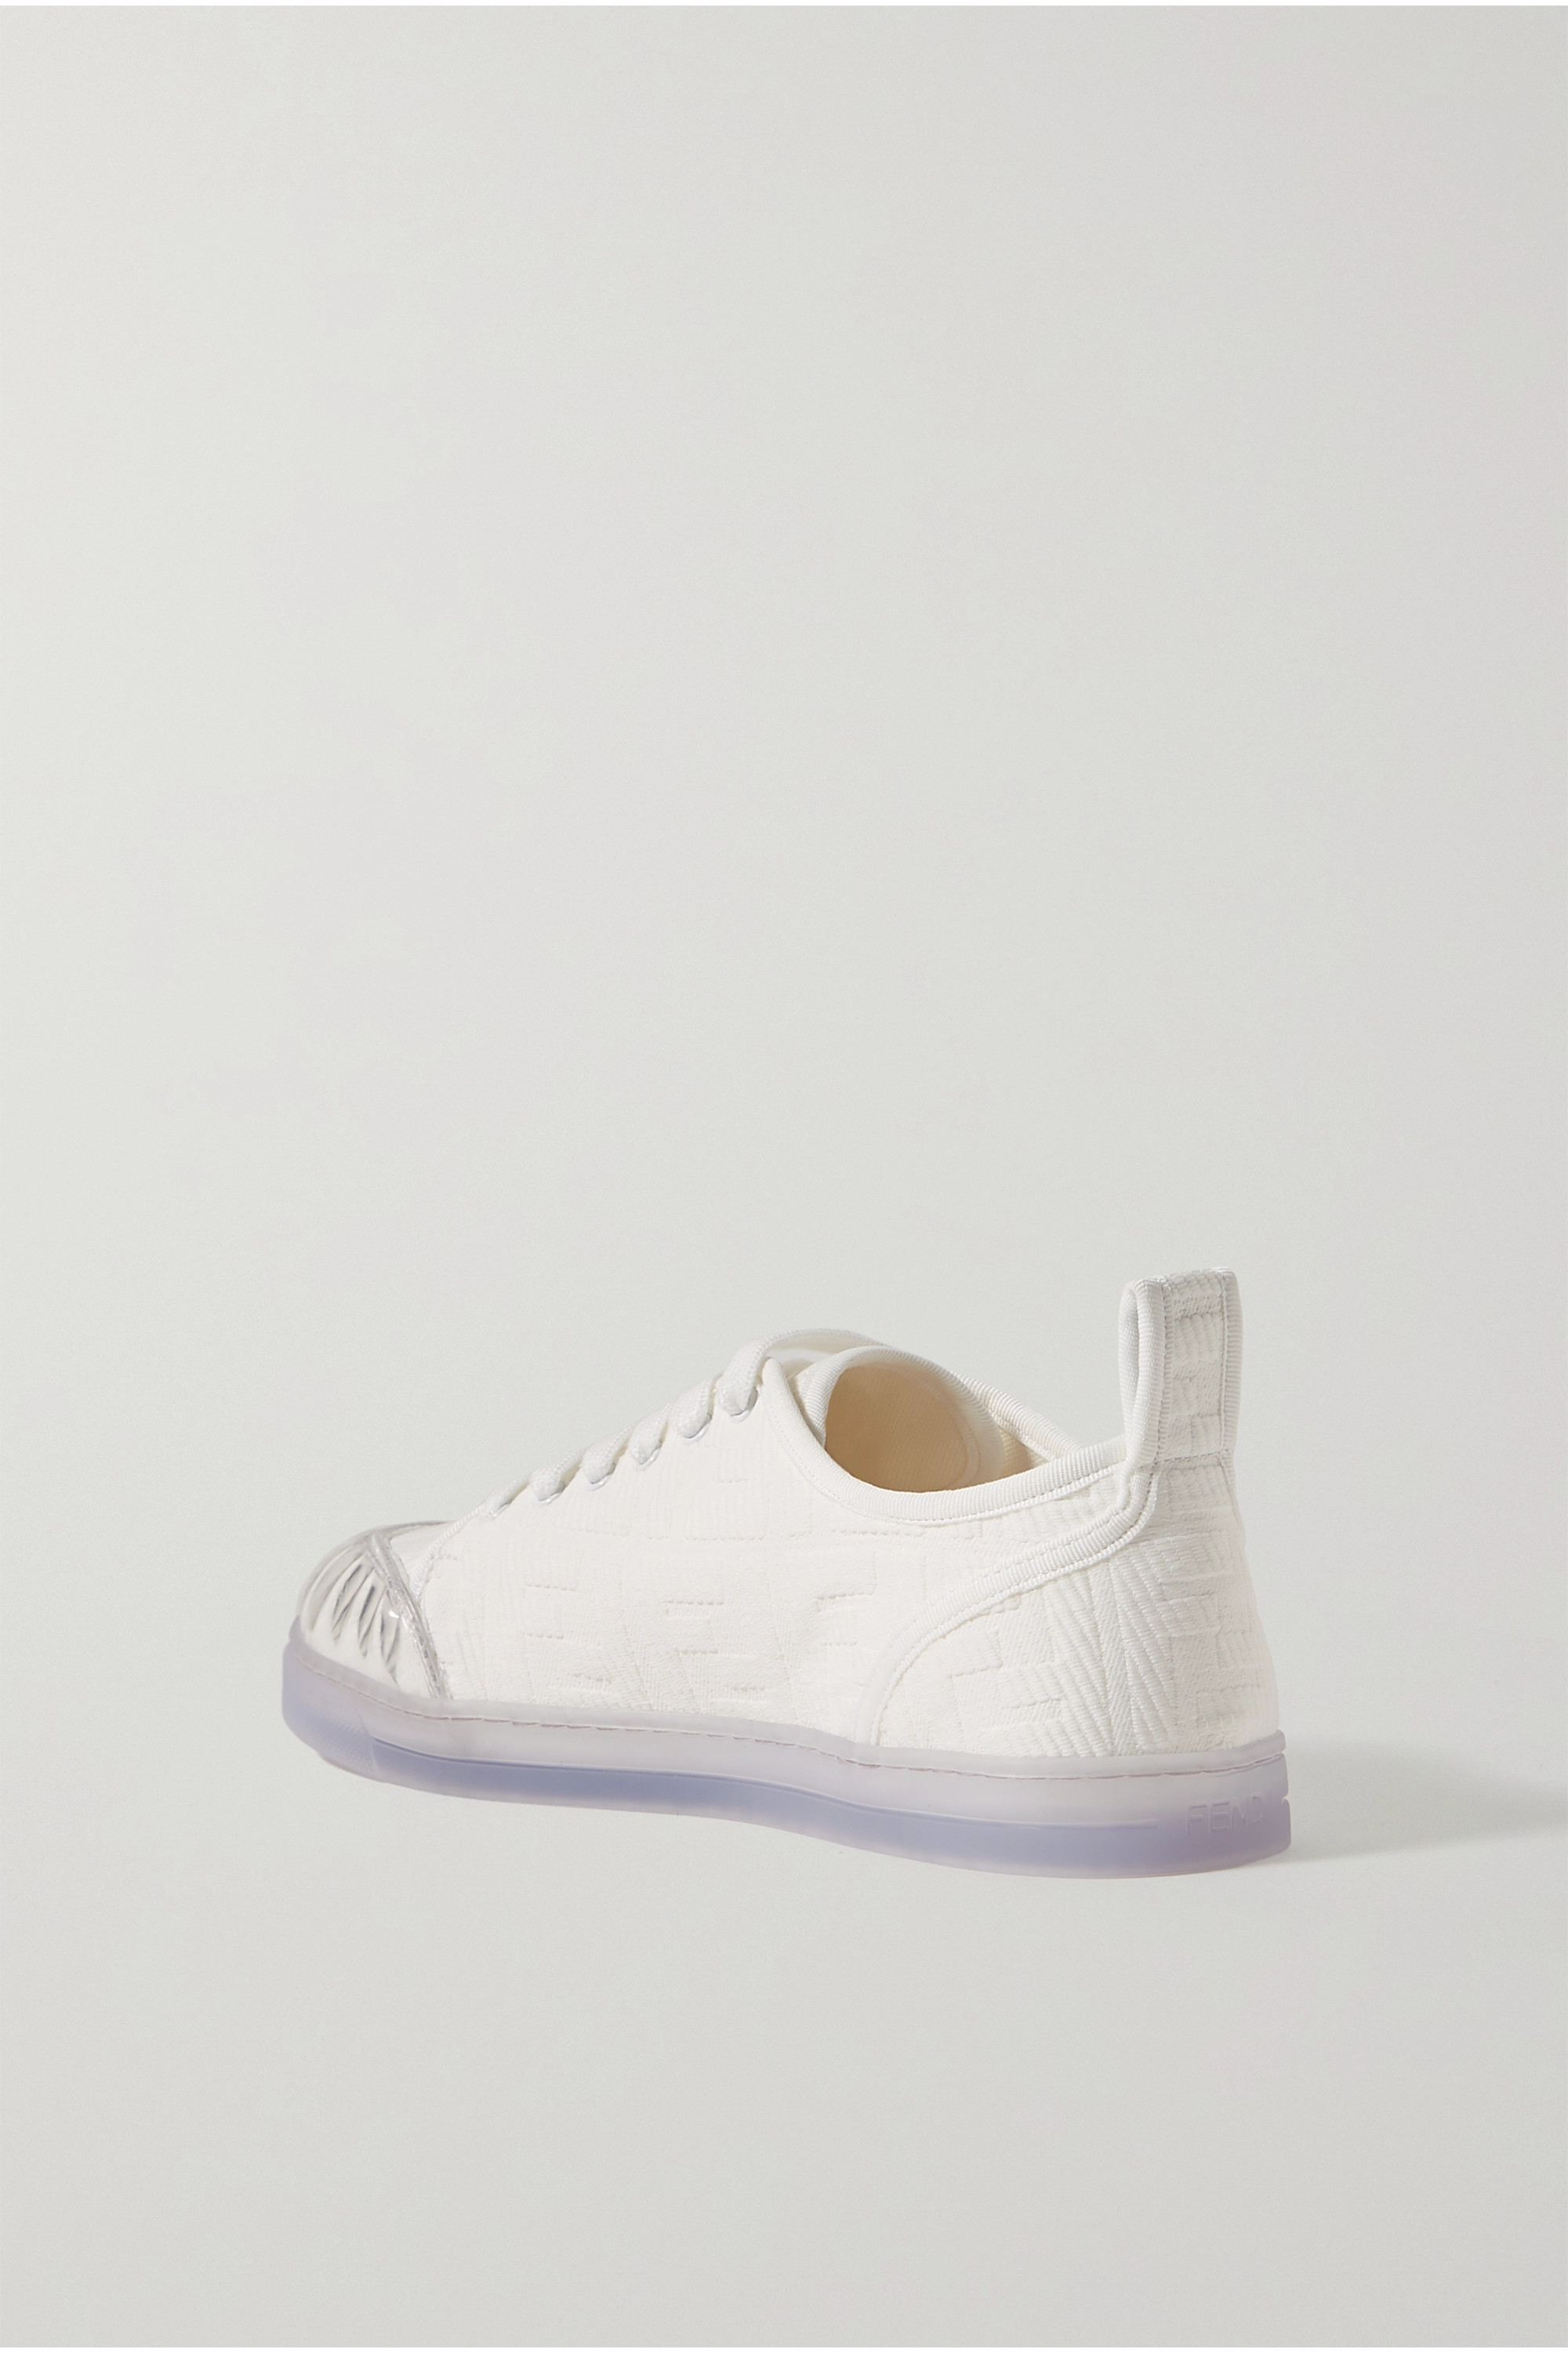 Fendi PVC-trimmed logo-jacquard canvas sneakers